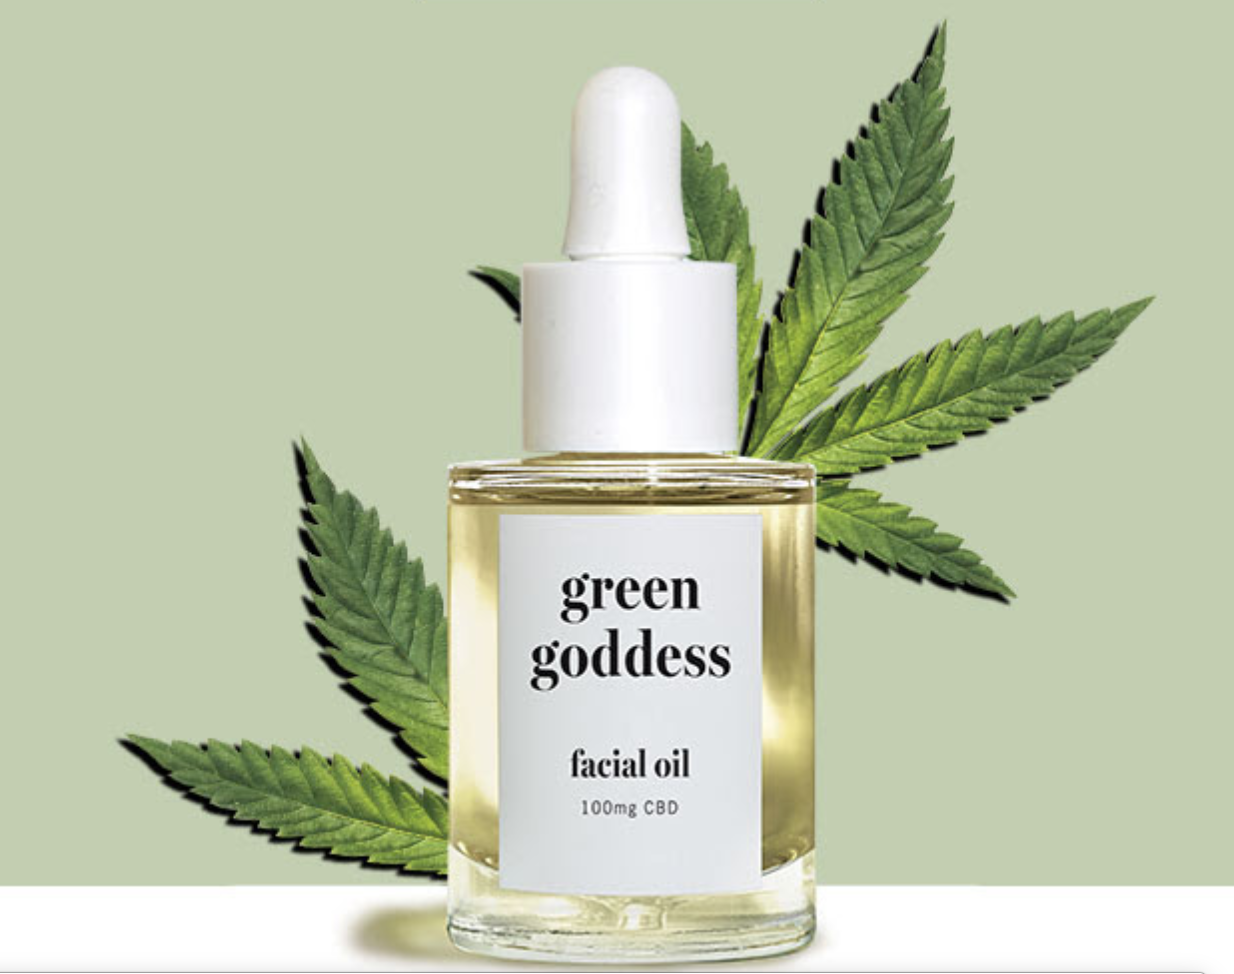 GREEN GODDESS our first facial oil, with CBD